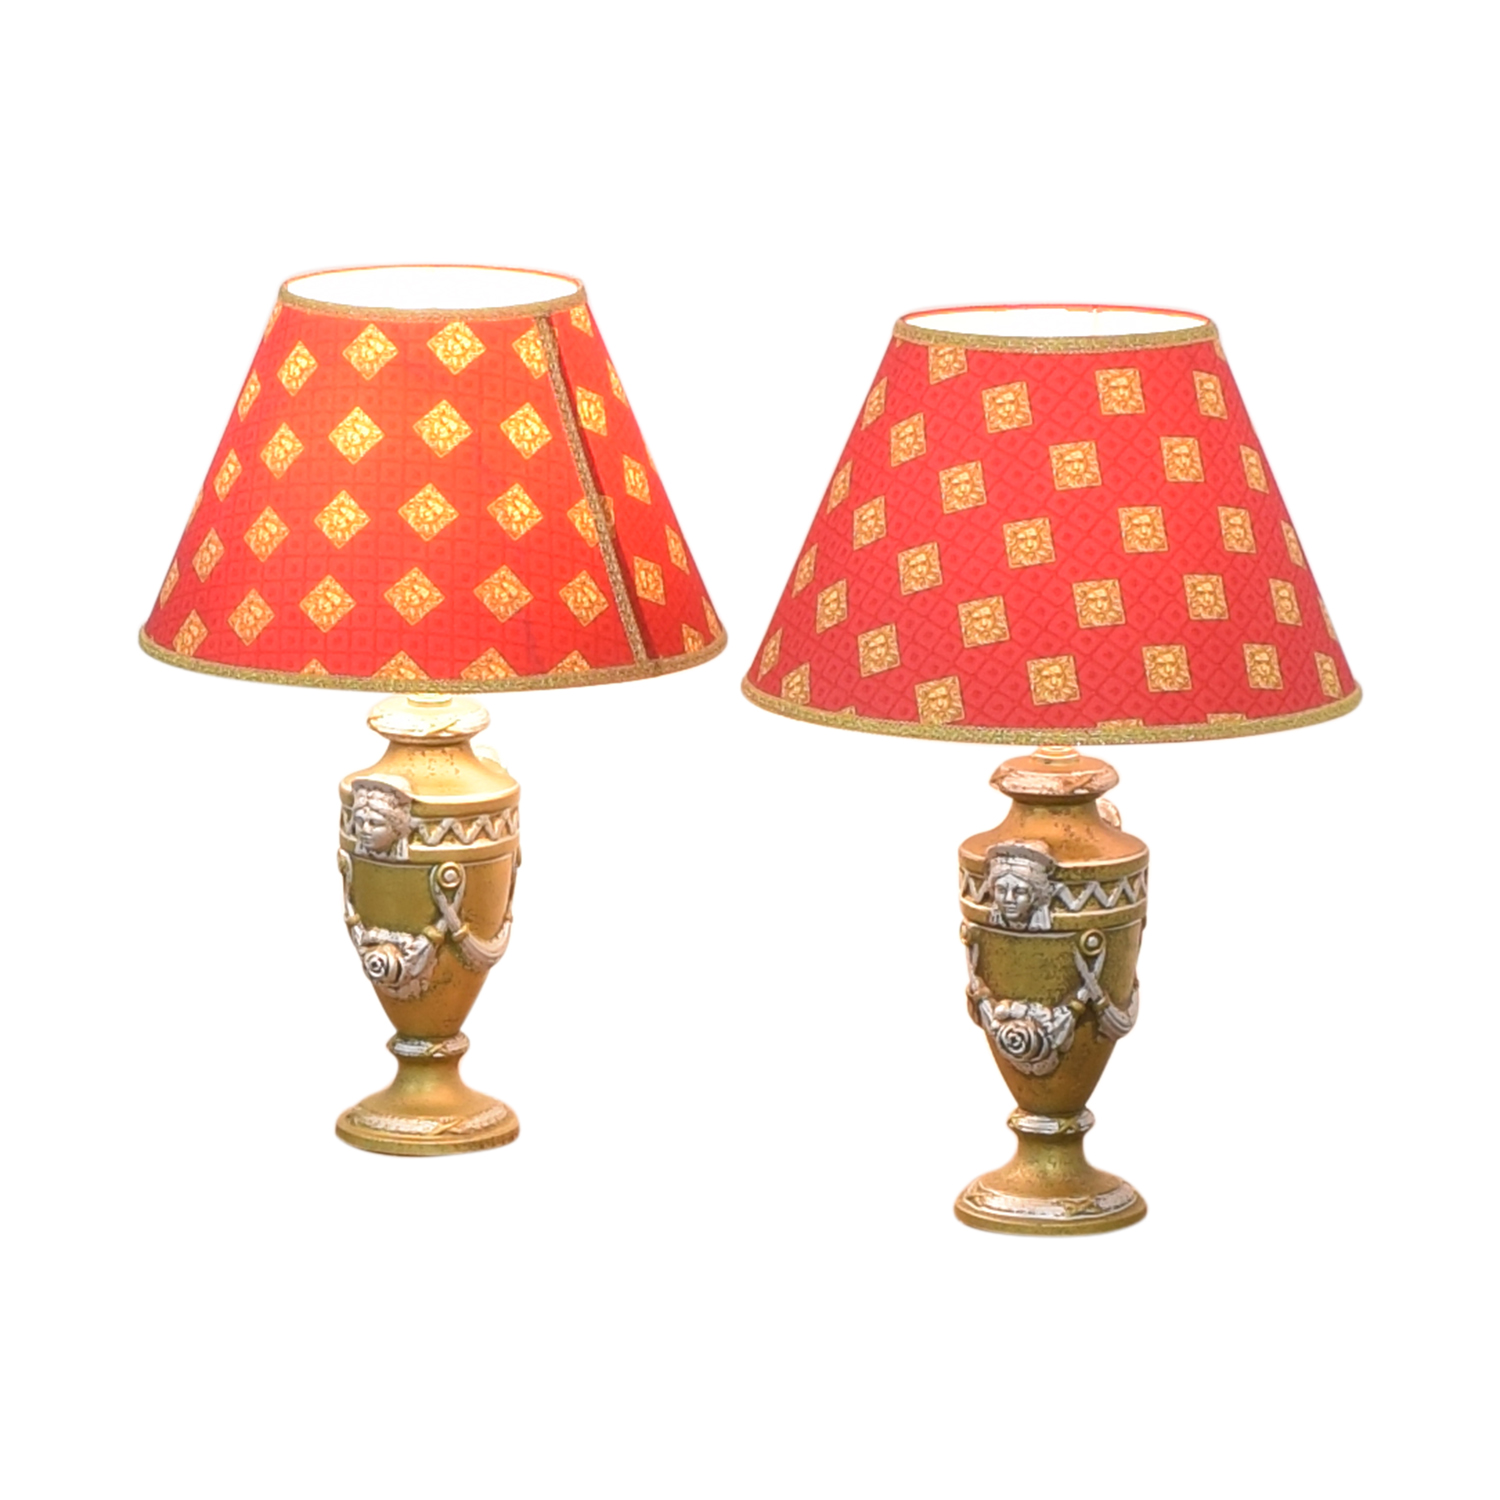 Versace Versace Table Lamps second hand